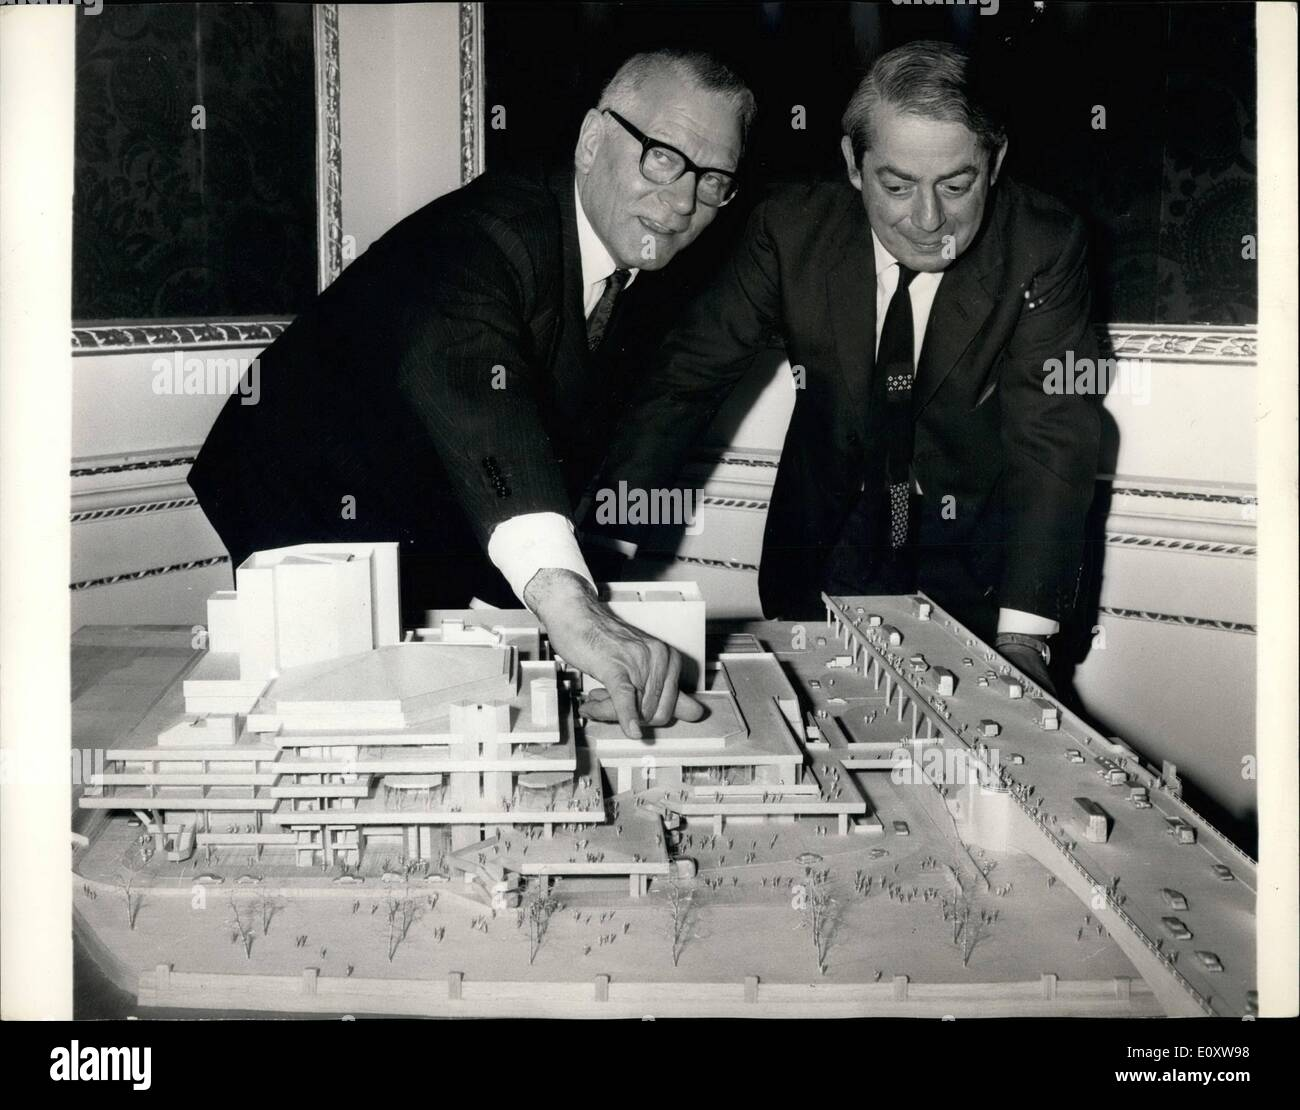 Nov. 22, 1967 - 22-11-67 Press conference on the National Theater on the South Bank Plan. A press conference was held today at the Arts Council, St. James' Square on the National Theater on the South Bank plan. Keystone Photo Shows: Sir Laurence Olivier on left, and Mr. Denys Lasdun, the architect, on right, seen looking at the model of the new National Theater which will be built on the South Bank. - Stock Image